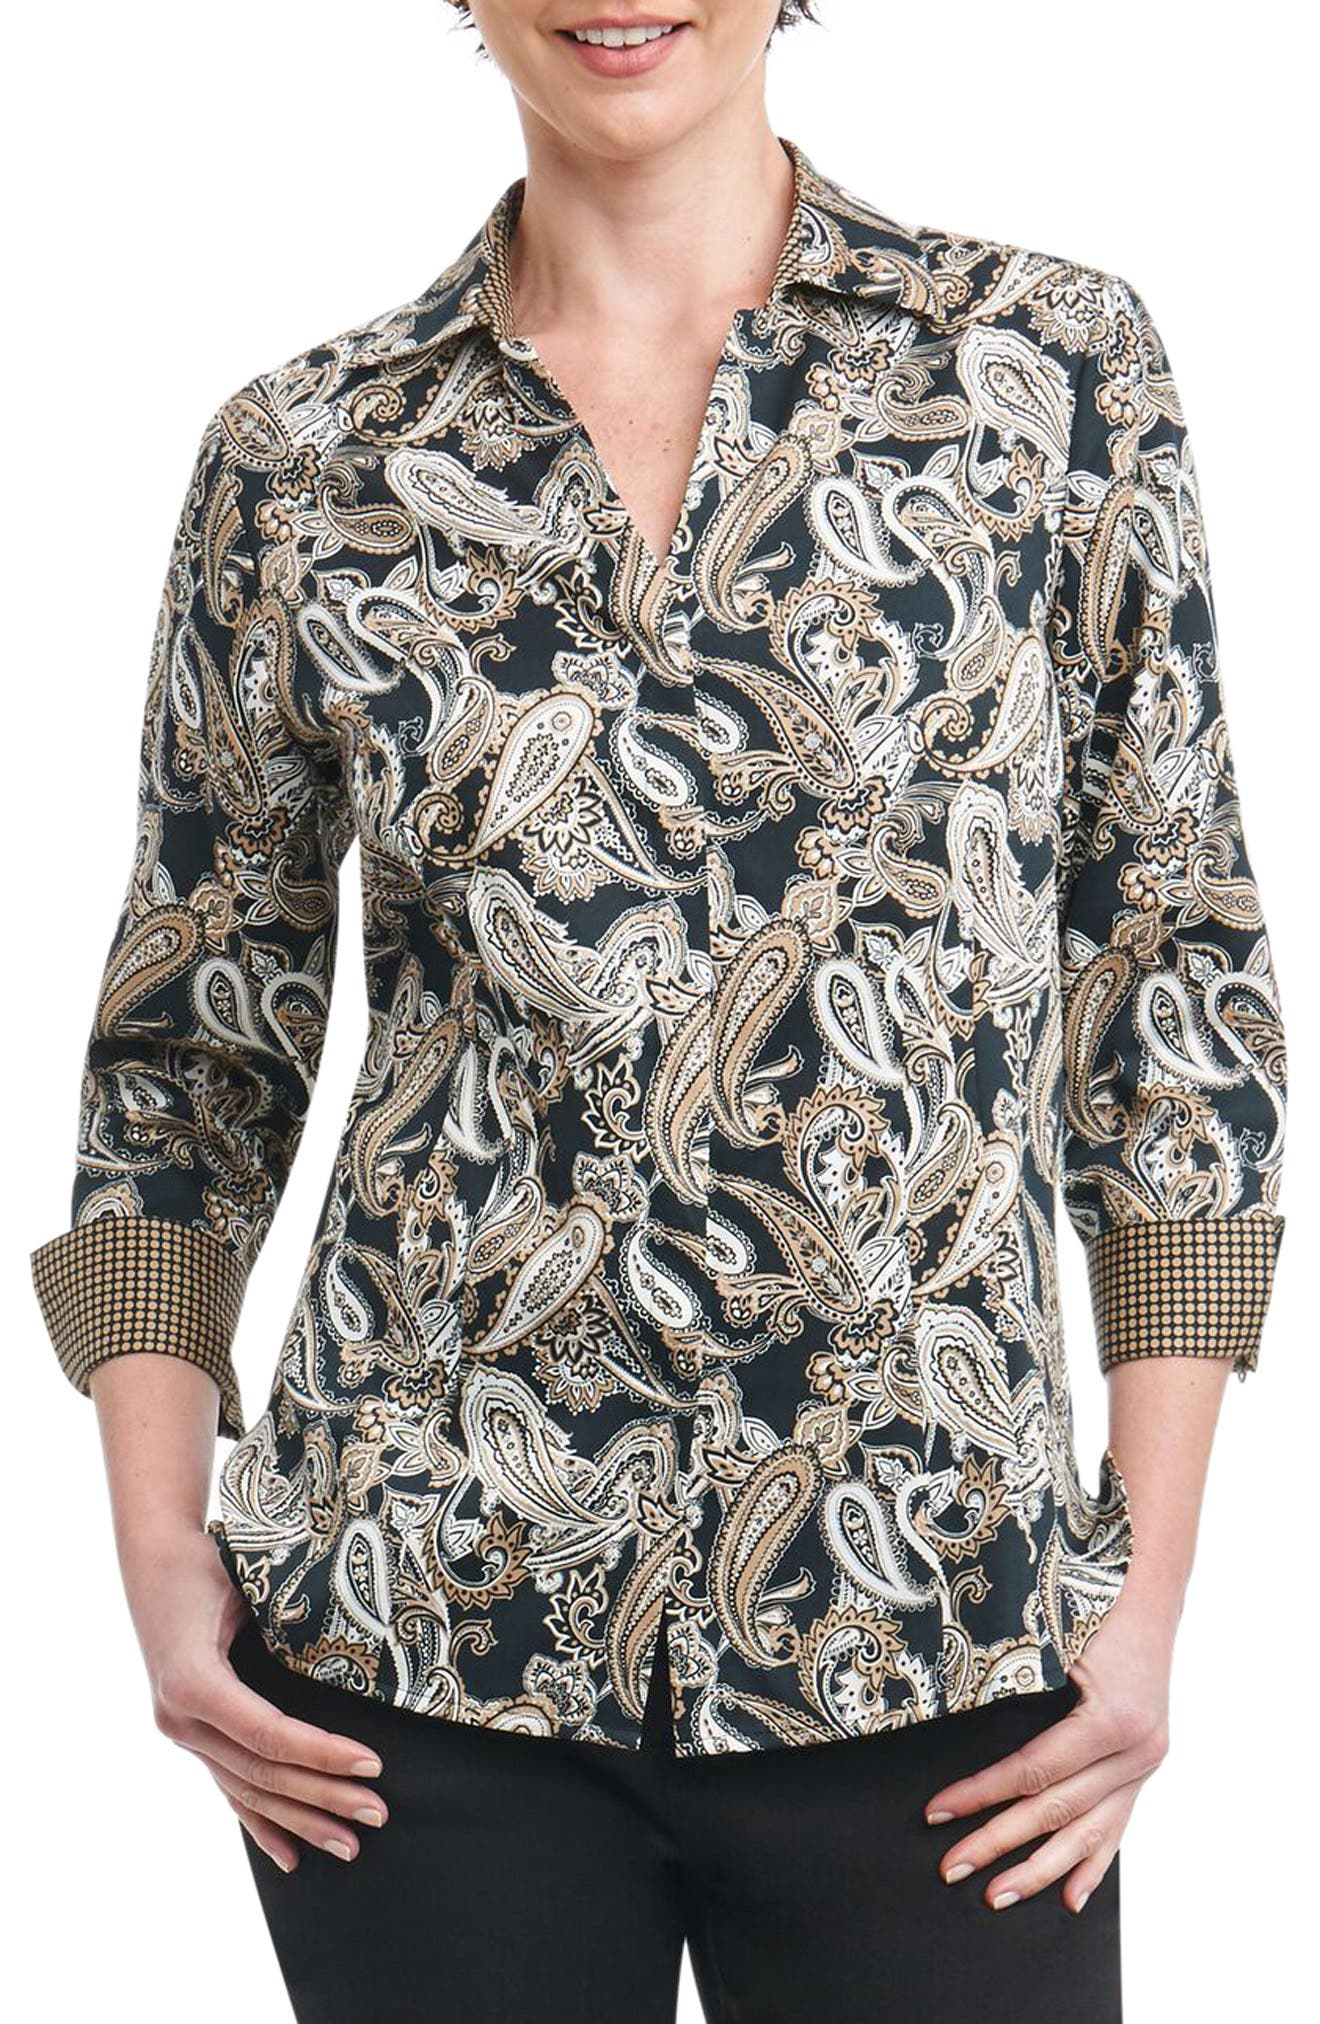 Taylor Heritage Paisley Wrinkle Free Shirt,                             Main thumbnail 1, color,                             Neutral